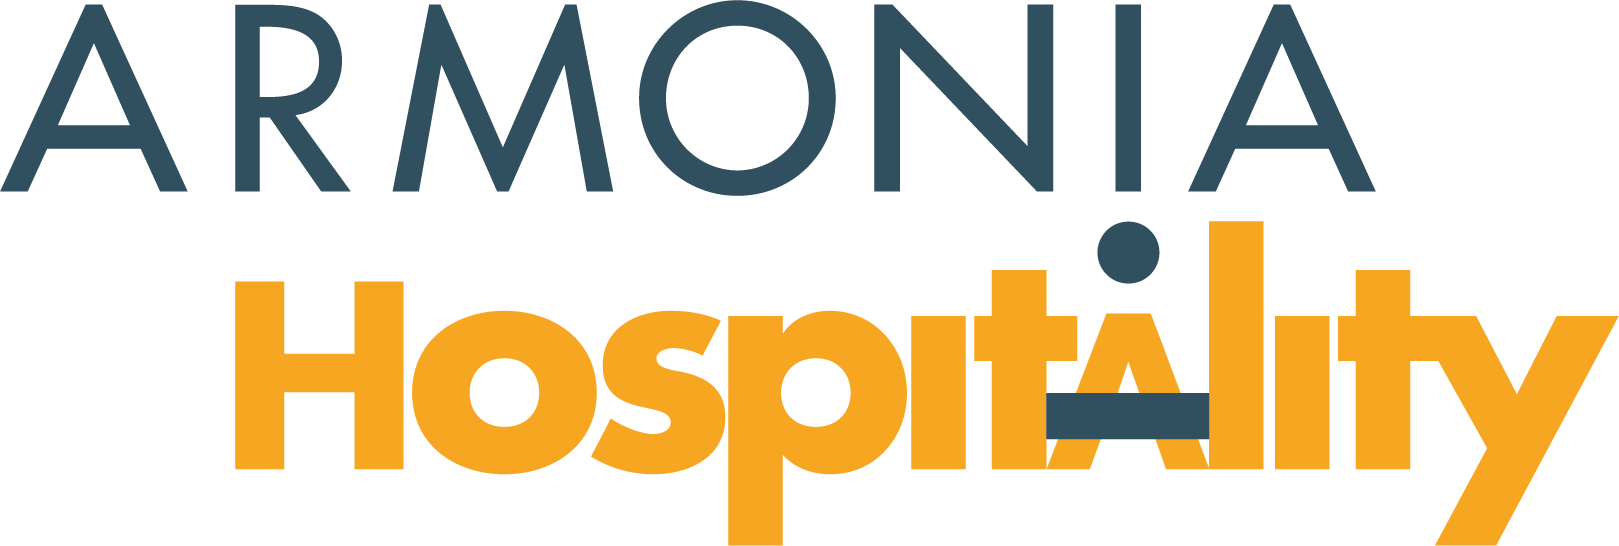 ARMONIA HOSPITALITY - Facilities, site du Facility management